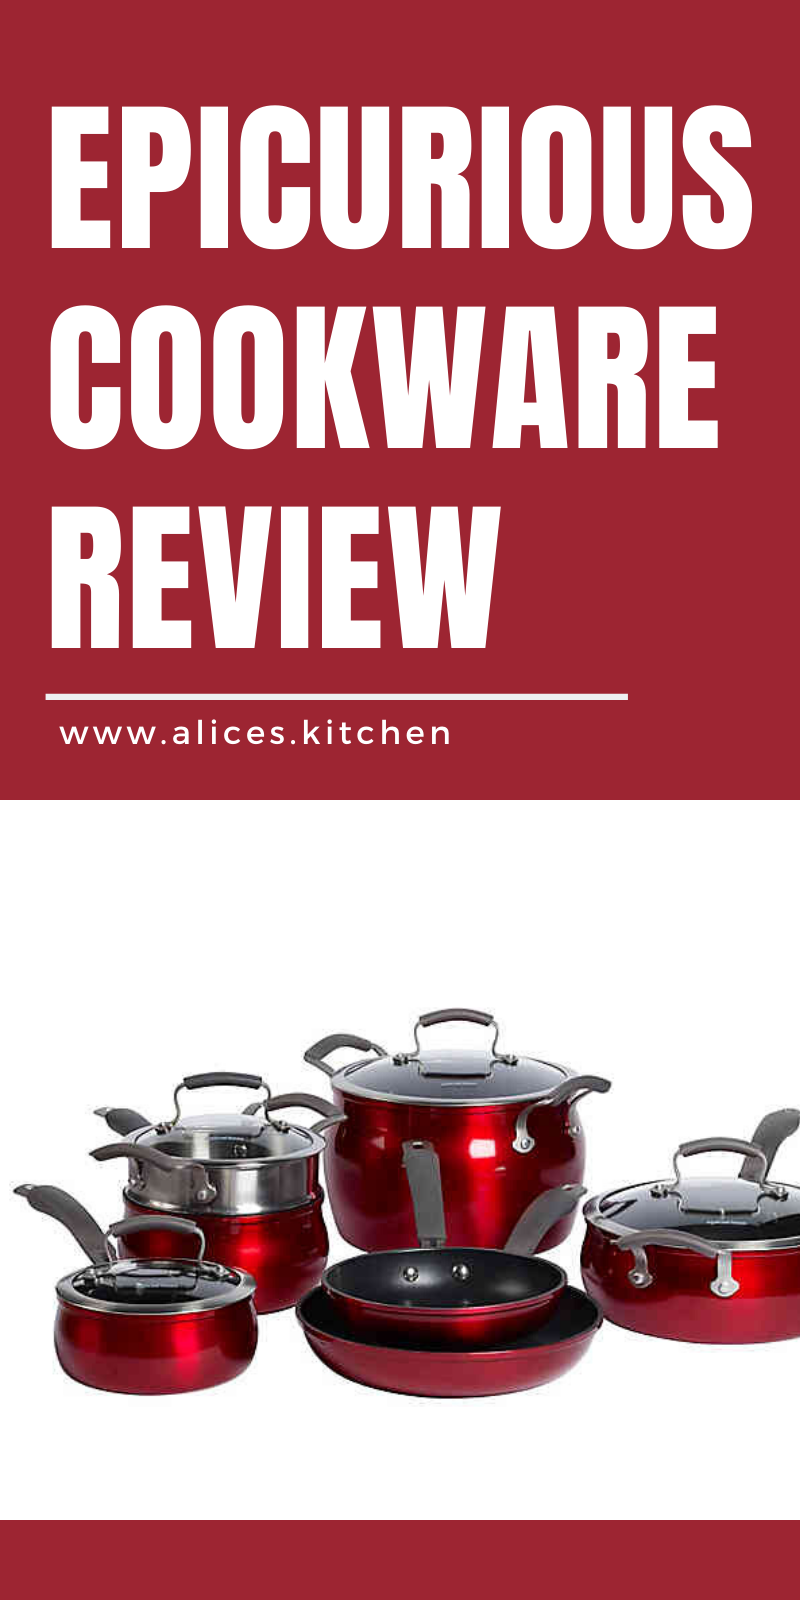 We Will Focus Mostly On One Cookware Set The 11 Piece Cookware